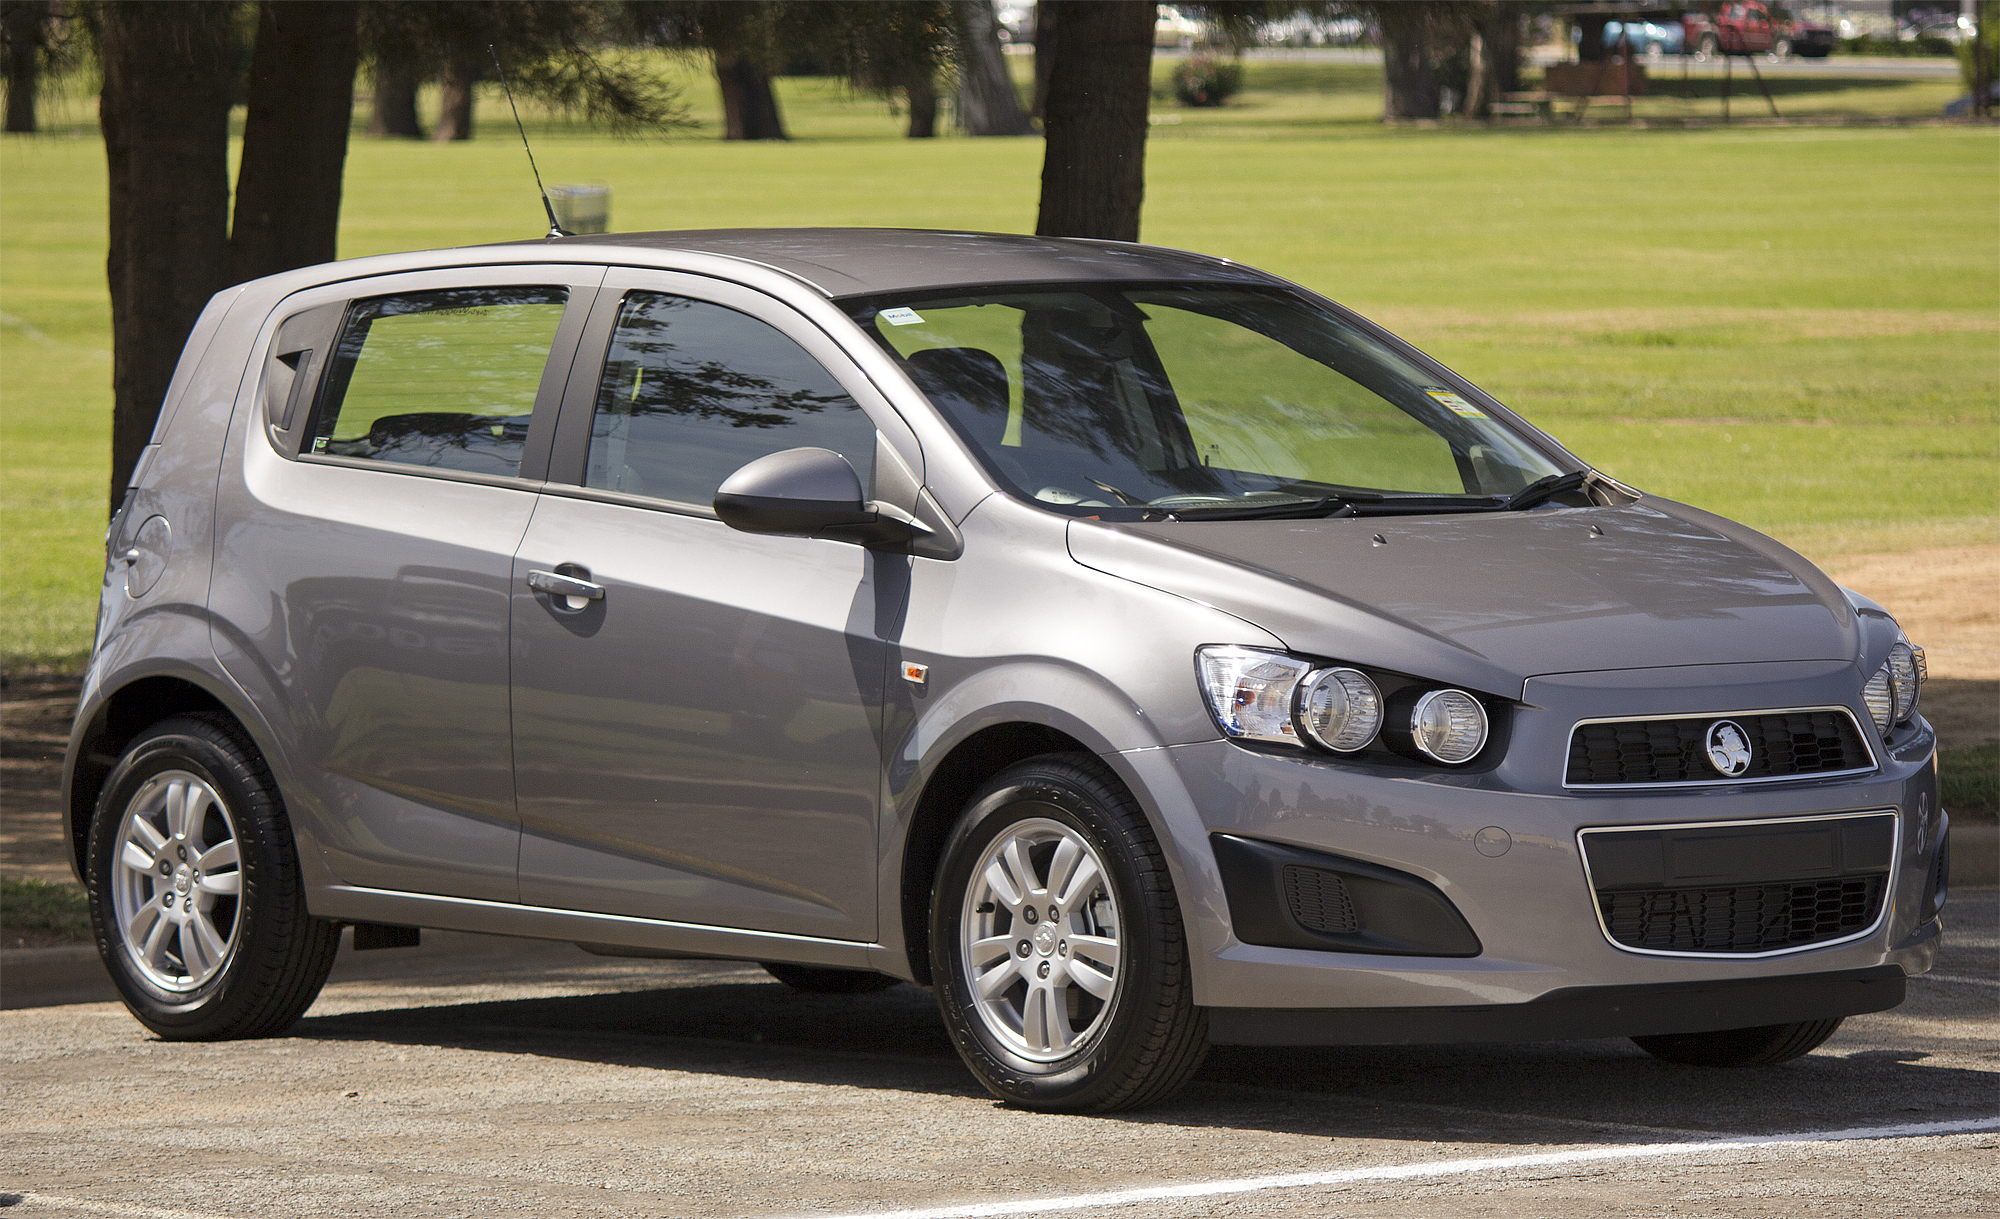 2011 Holden Barina Sedan Sell My Car Sell My Car Buy